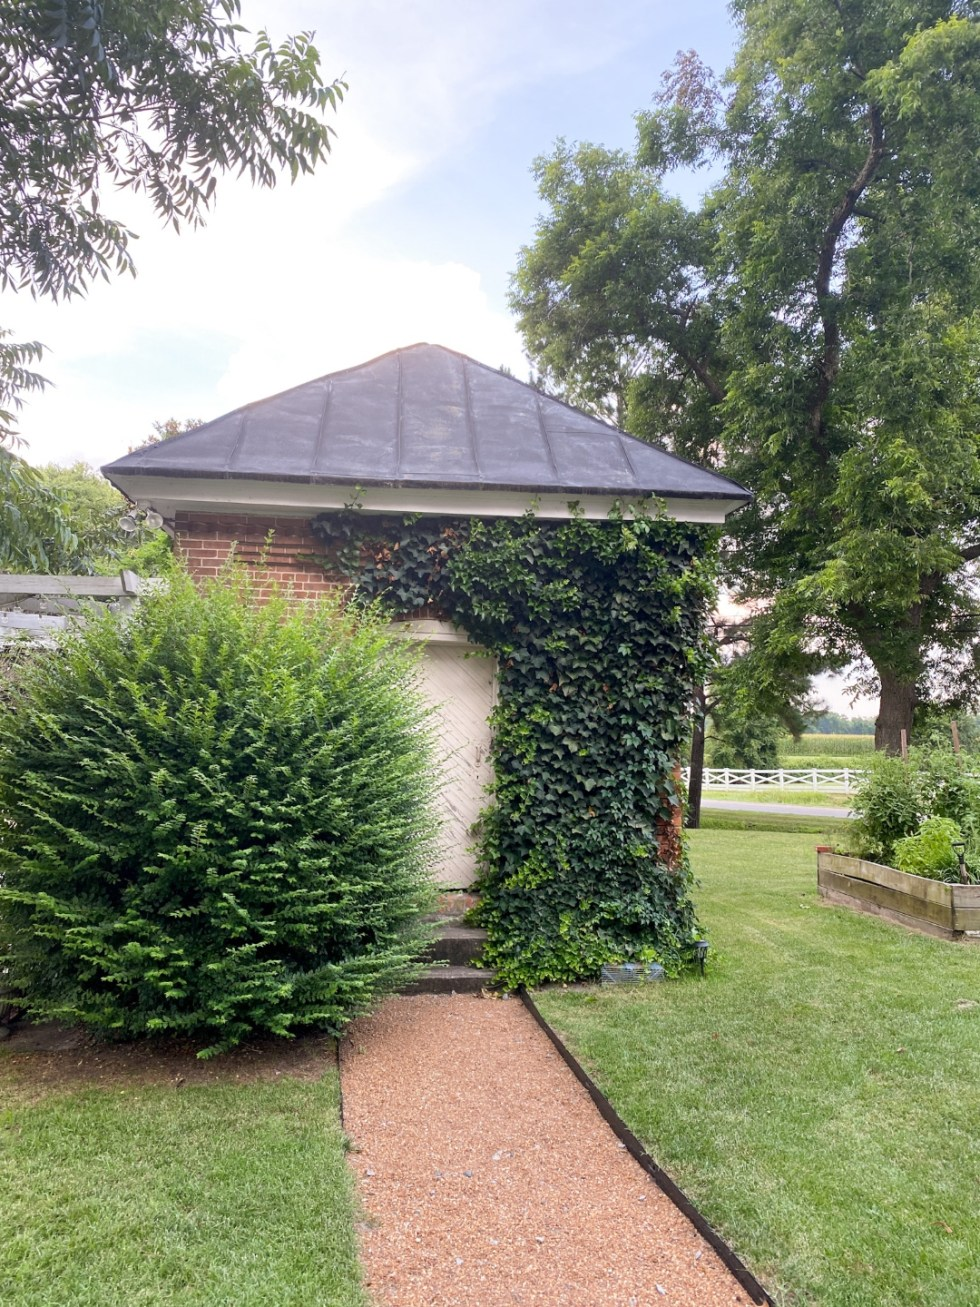 Top 10 Best Things to Do in Edenton, NC: A Complete Travel Guide - I'm Fixin' To - @imfixintoblog | Edenton Travel Guide by popular NC travel guid, I'm Fixin' To: image of a red brick building covered in ivy.